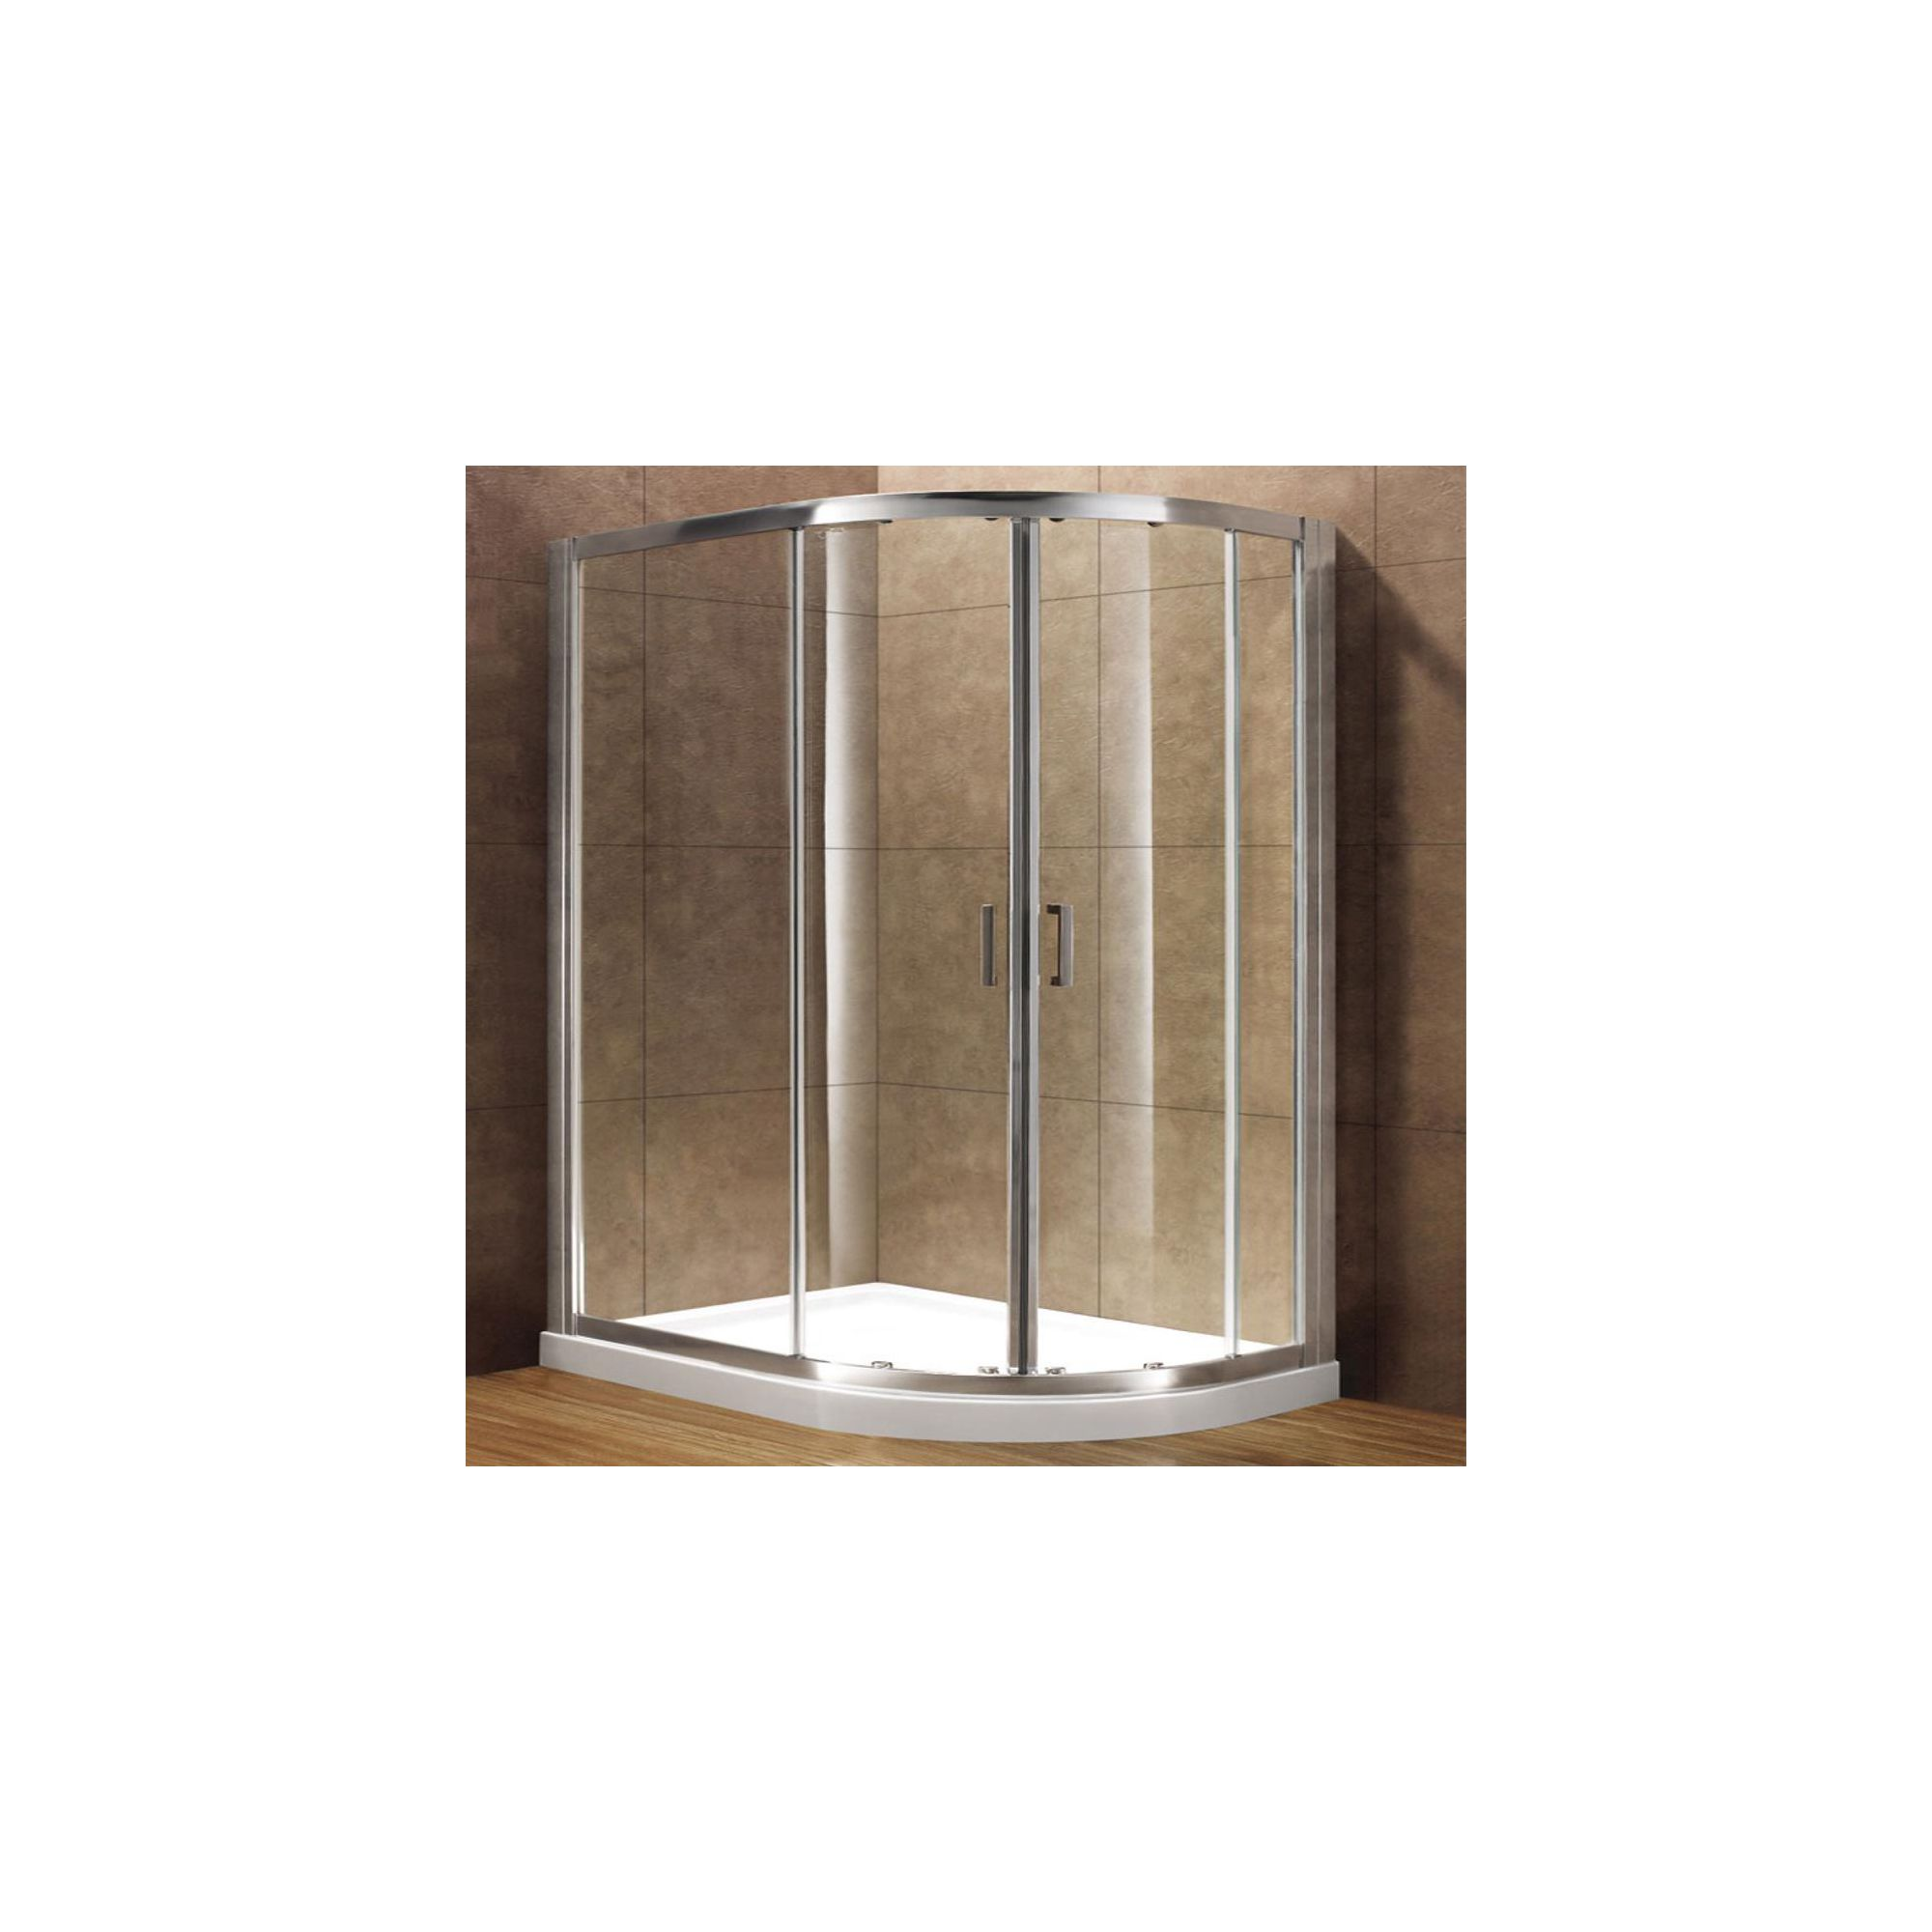 Duchy Premium Double Offset Quadrant Door Shower Enclosure, 1200mm x 800mm, 8mm Glass, Low Profile Tray, Right Handed at Tesco Direct